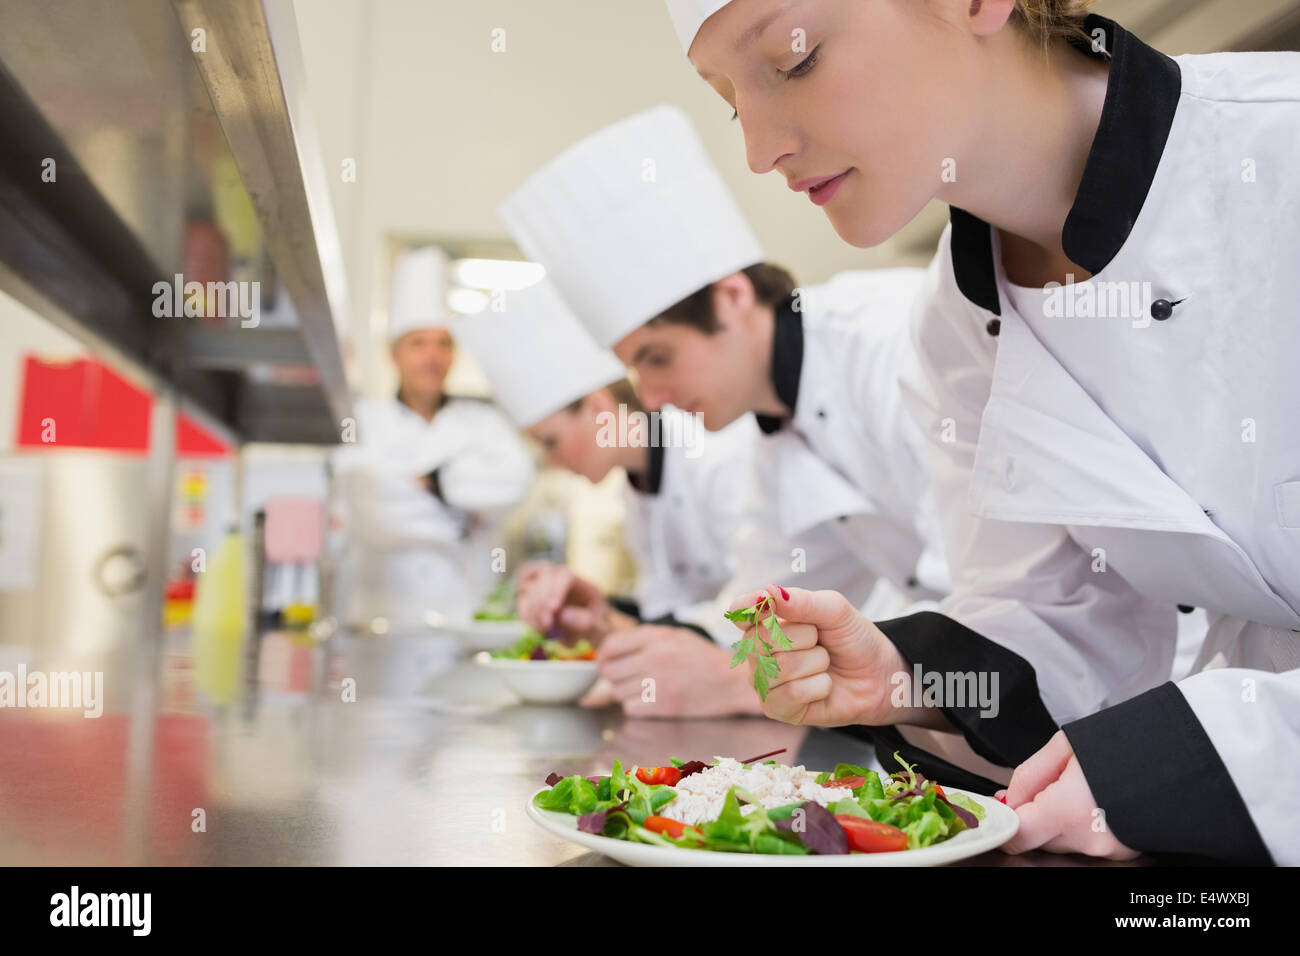 Chef finishing her salad in culinary class - Stock Image